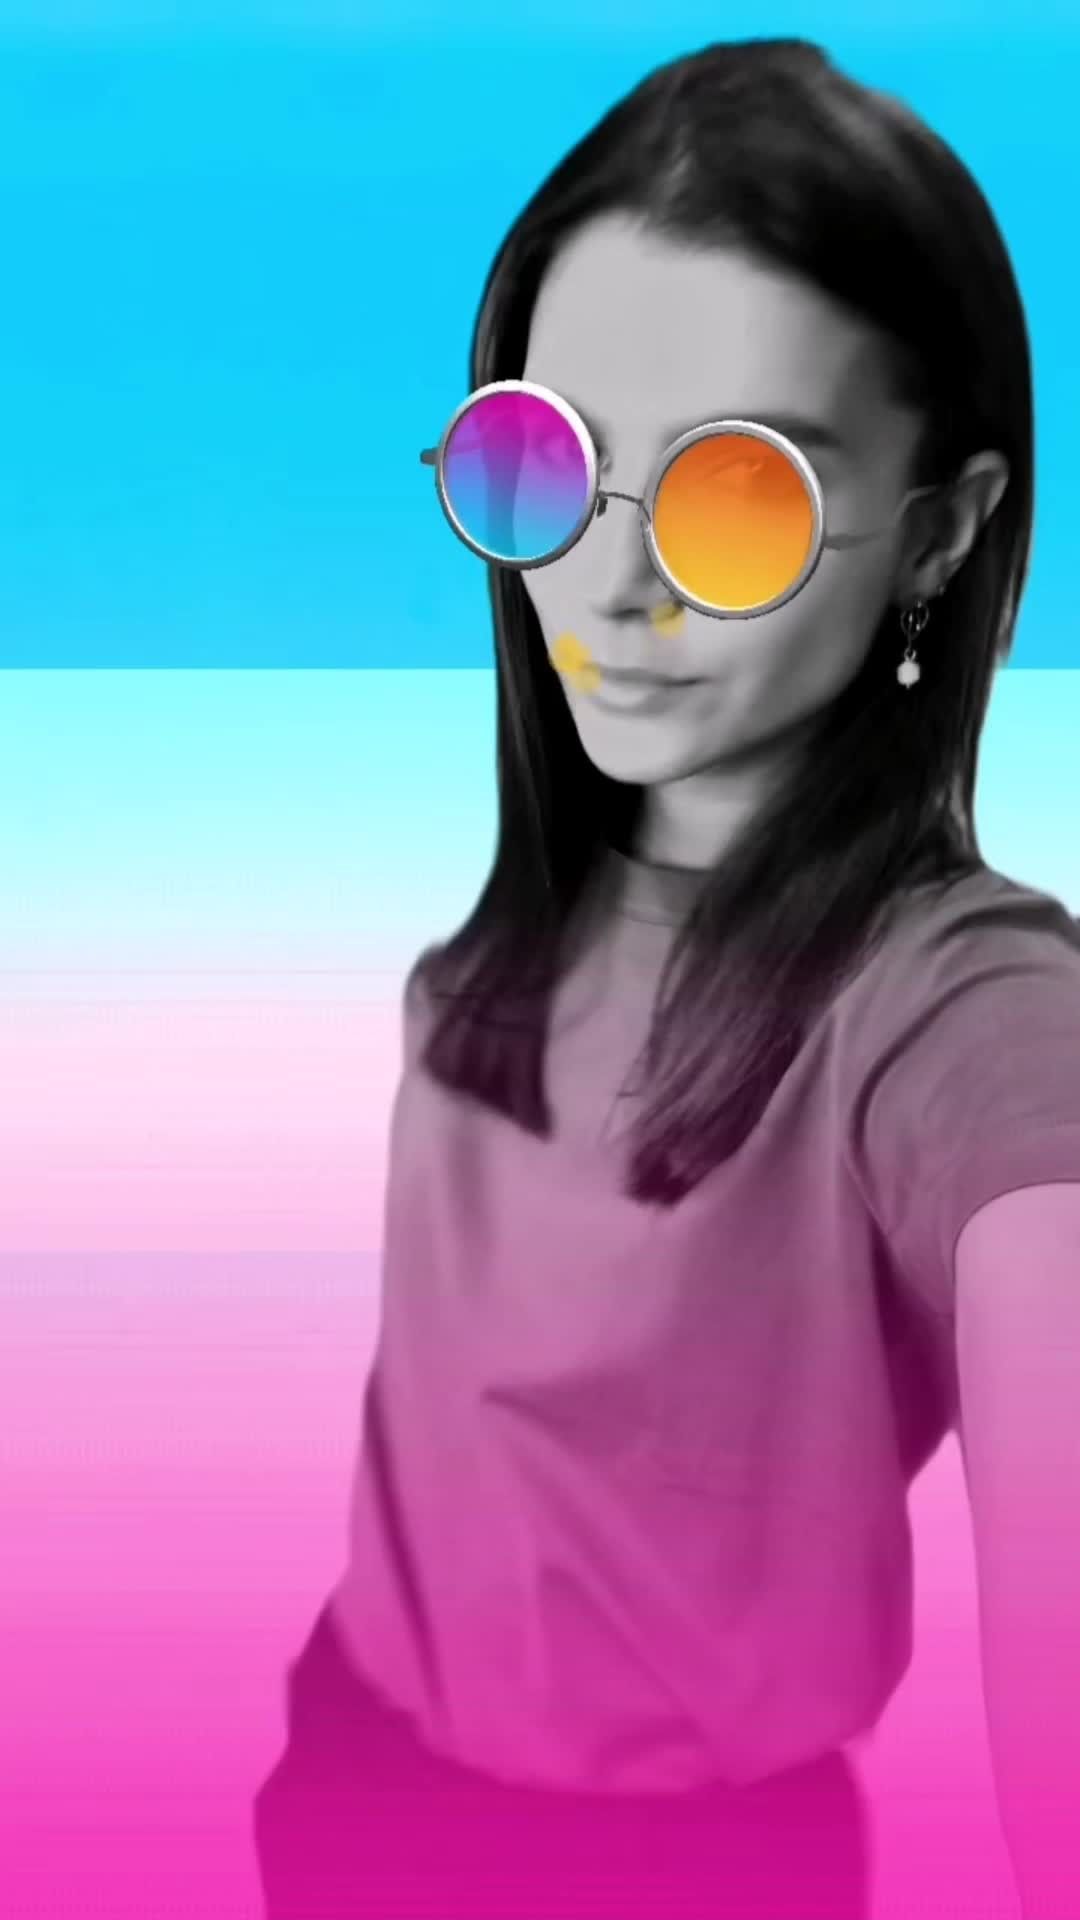 Instagram filter Сolored glasses